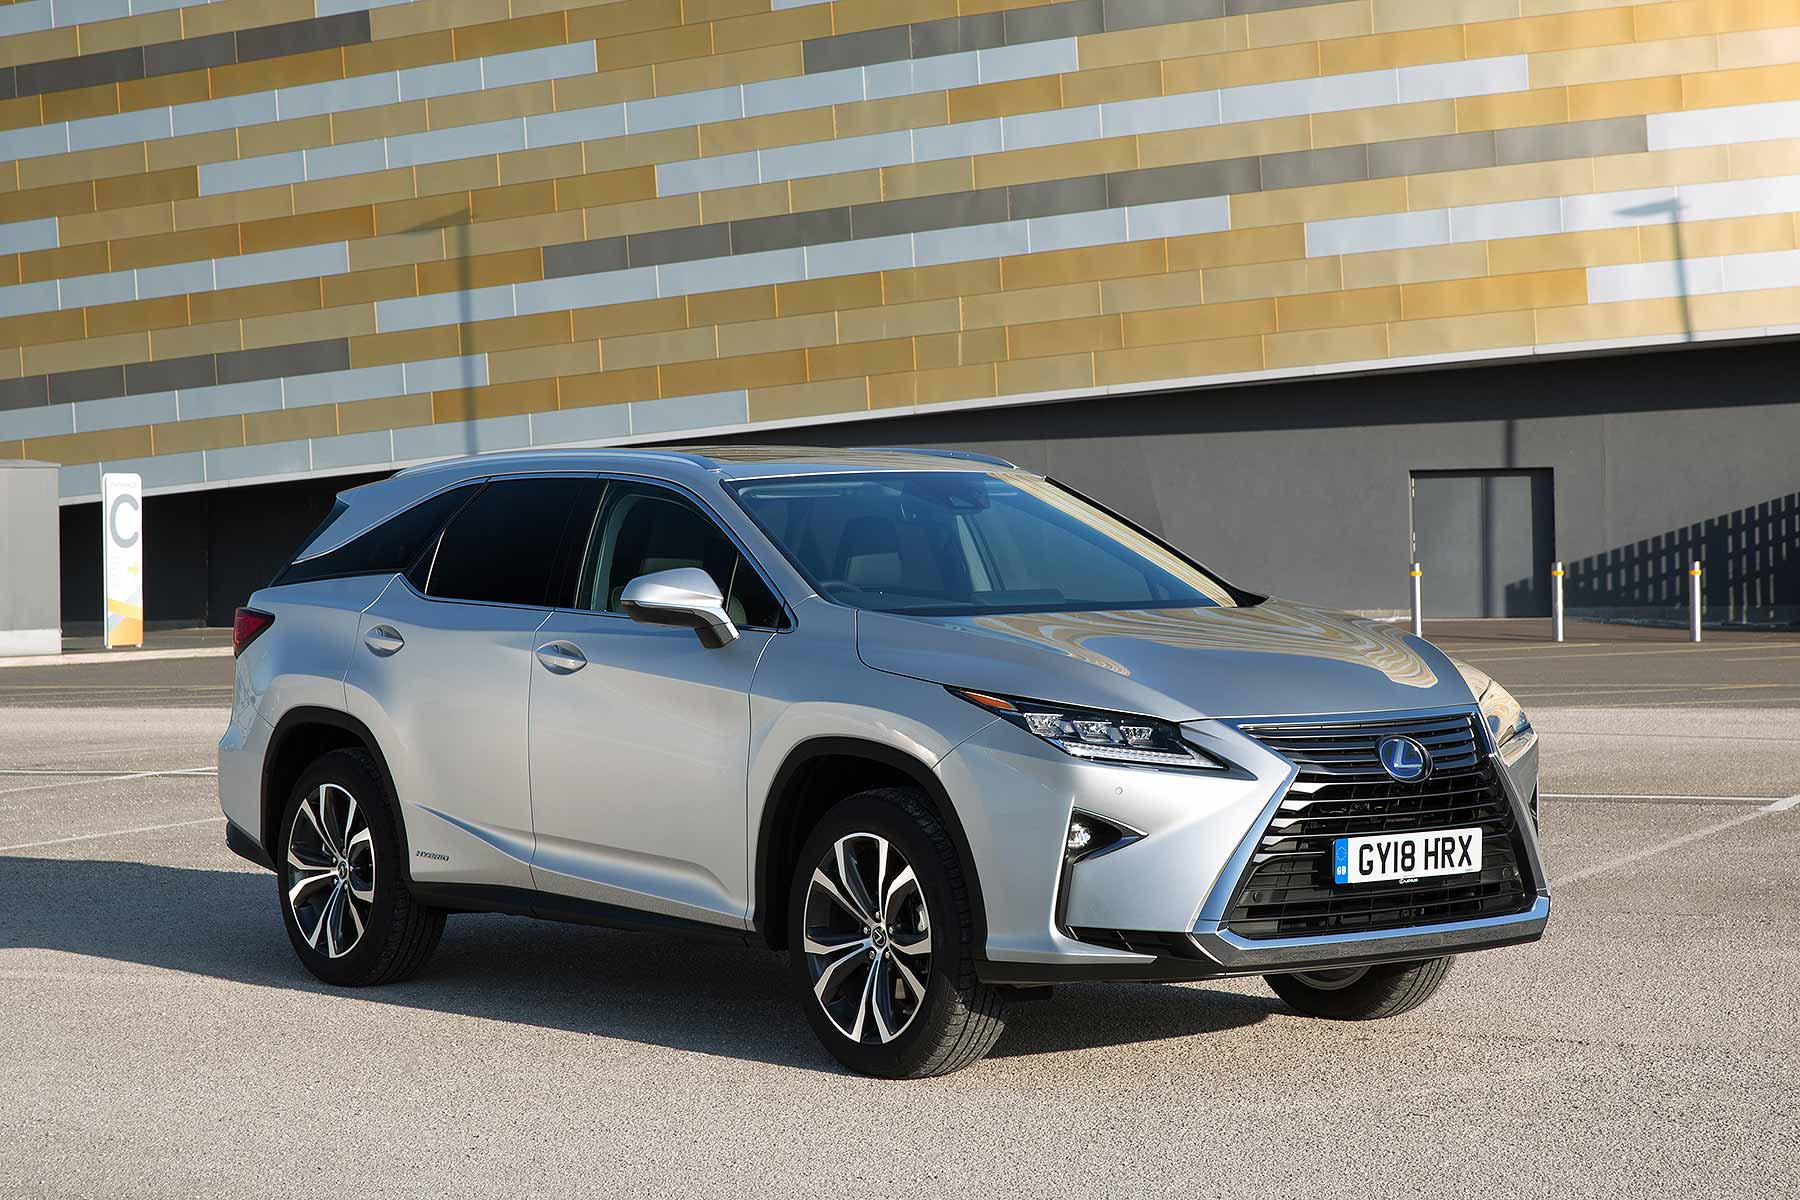 Lexus Rx 450h 7 Seater >> Britain's first Lexus 7-seater will cost from £50,995 | Motoring Research